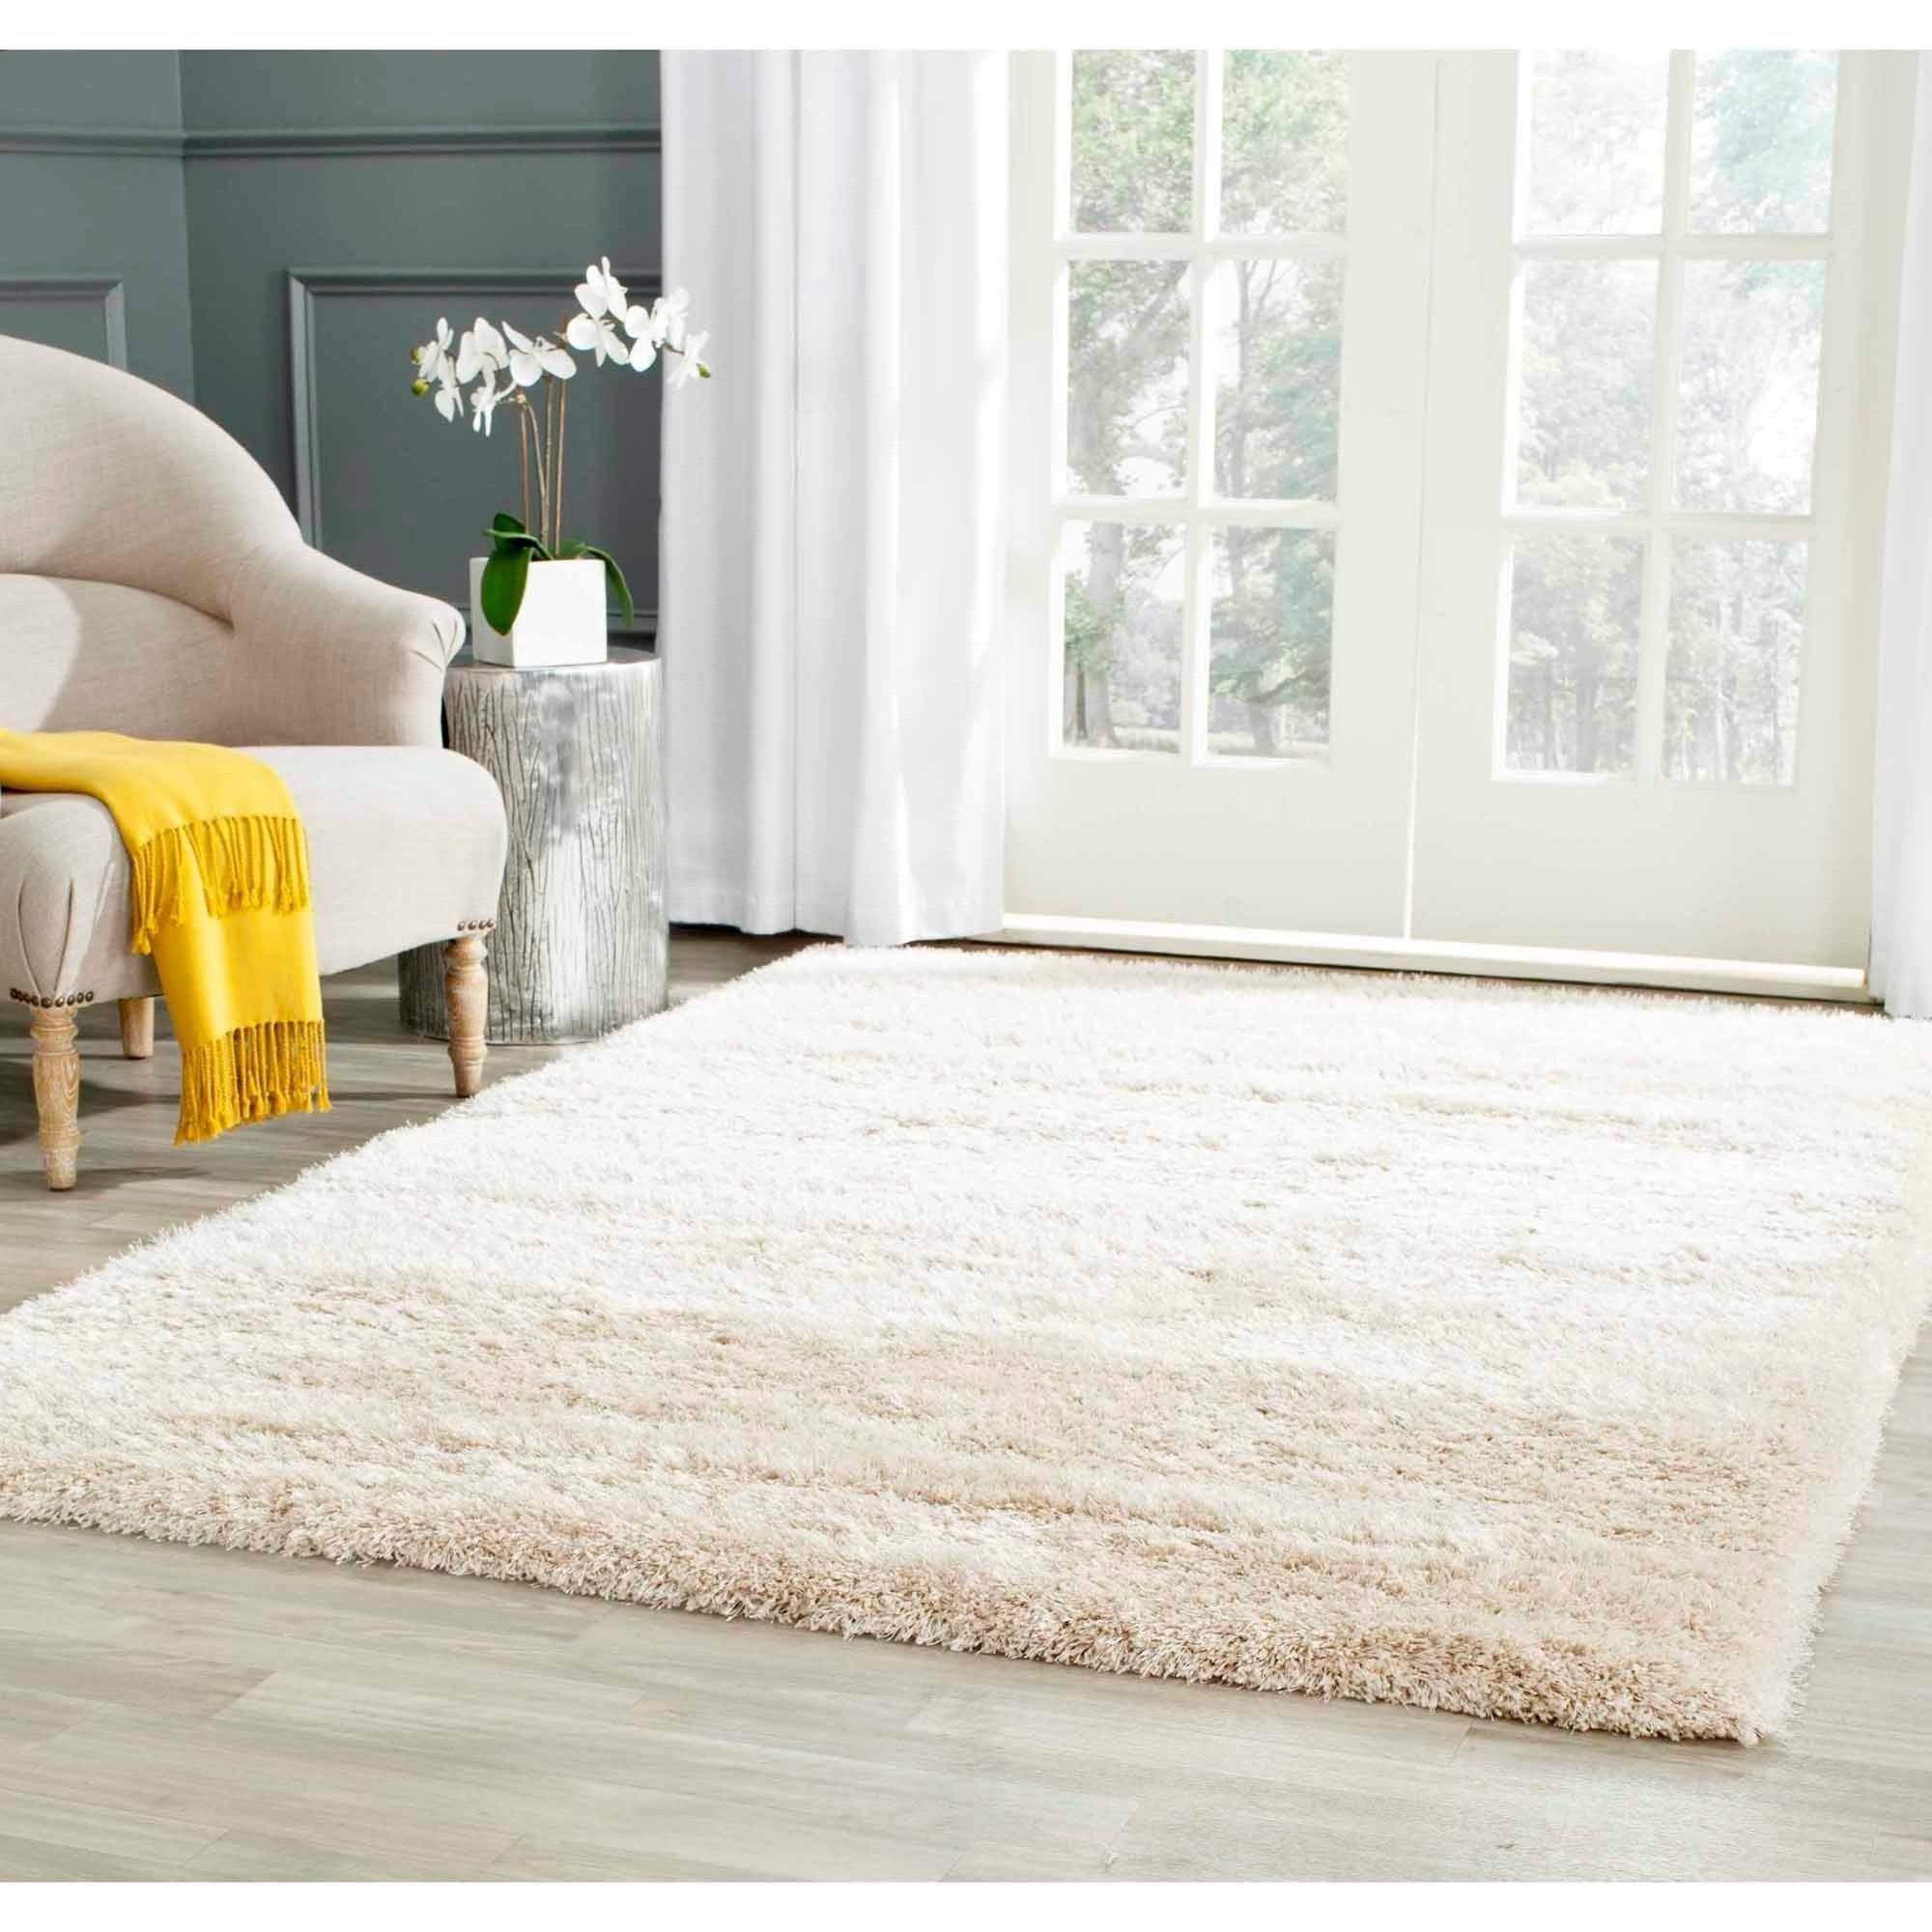 Safavieh Charlotte Solid Plush Shag Area Rug by Safavieh